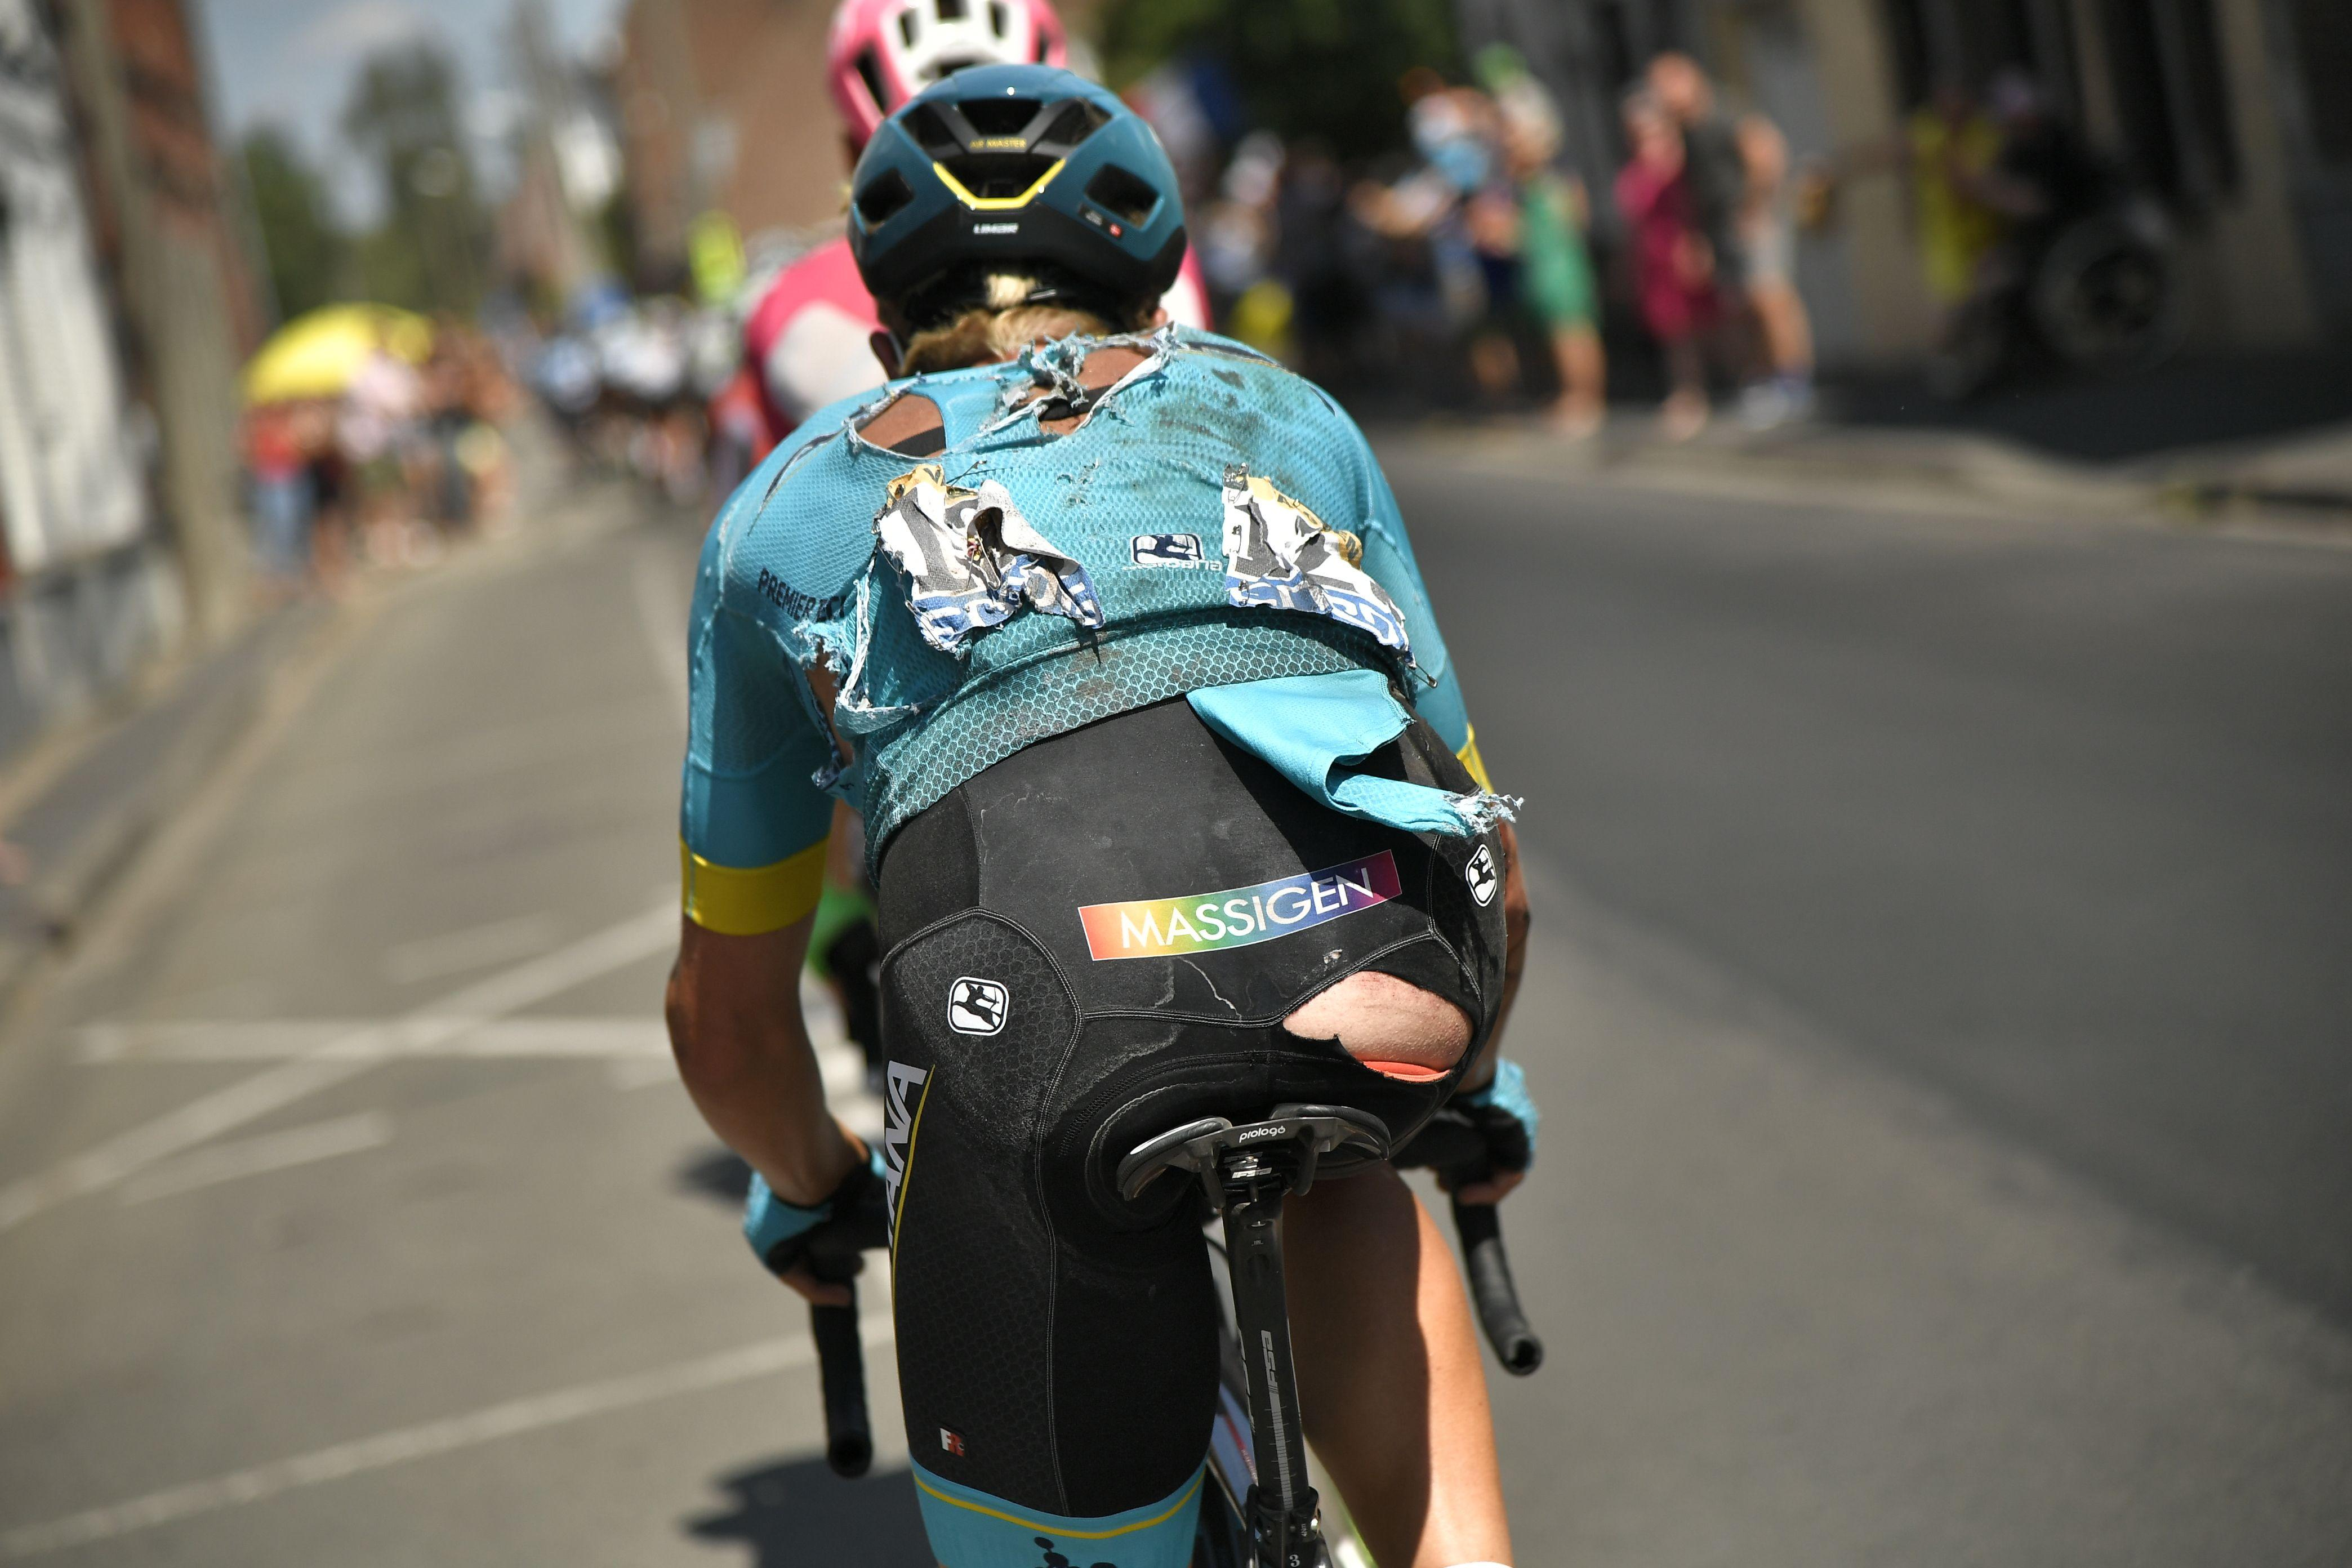 Sanchez's team-mate Michael Valgren also had a nasty crash on a cobbled stage nine that tore up his shorts and jersey